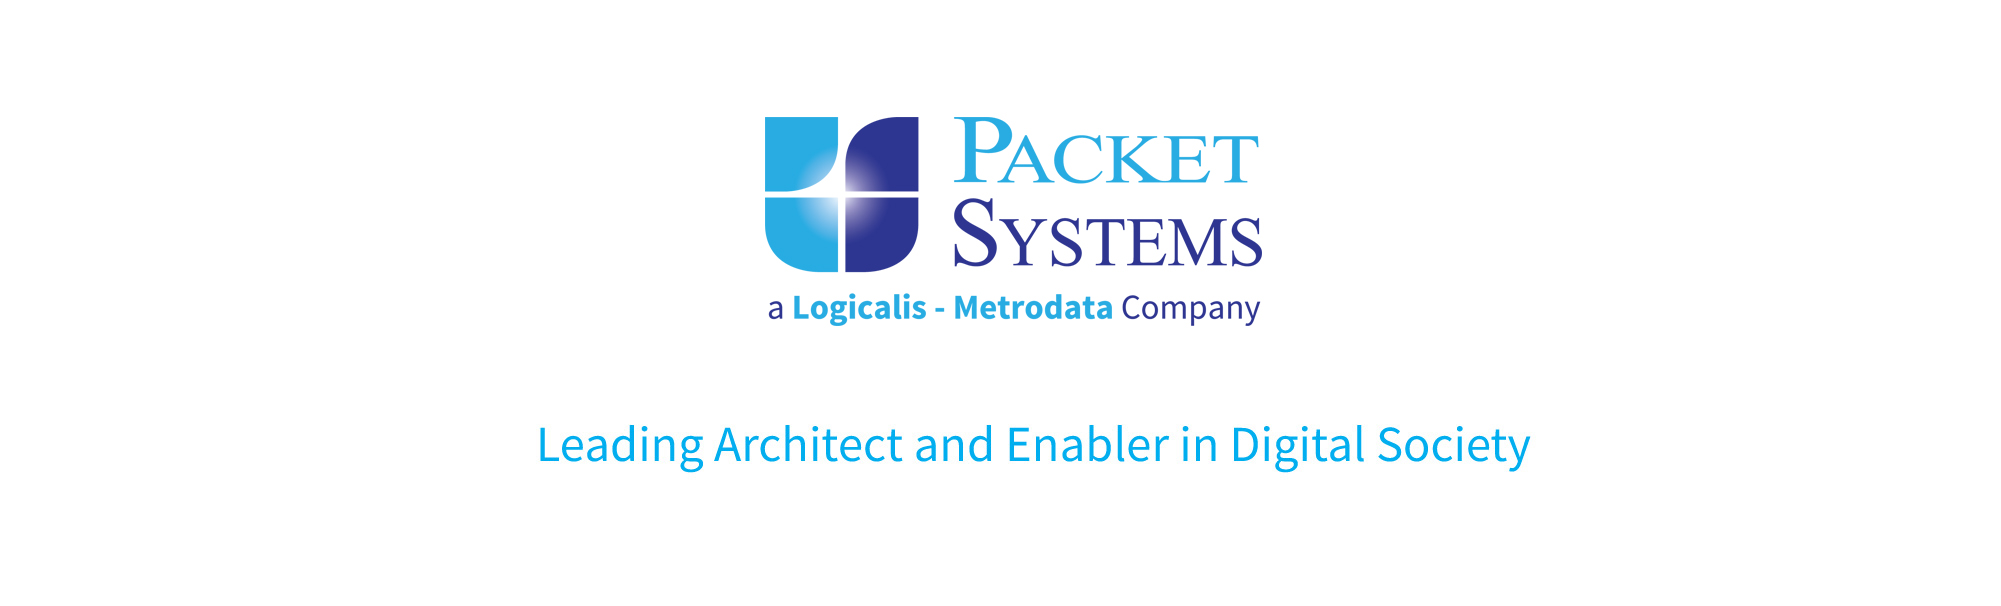 Packet Systems | Leading Architect and Enabler in Digital